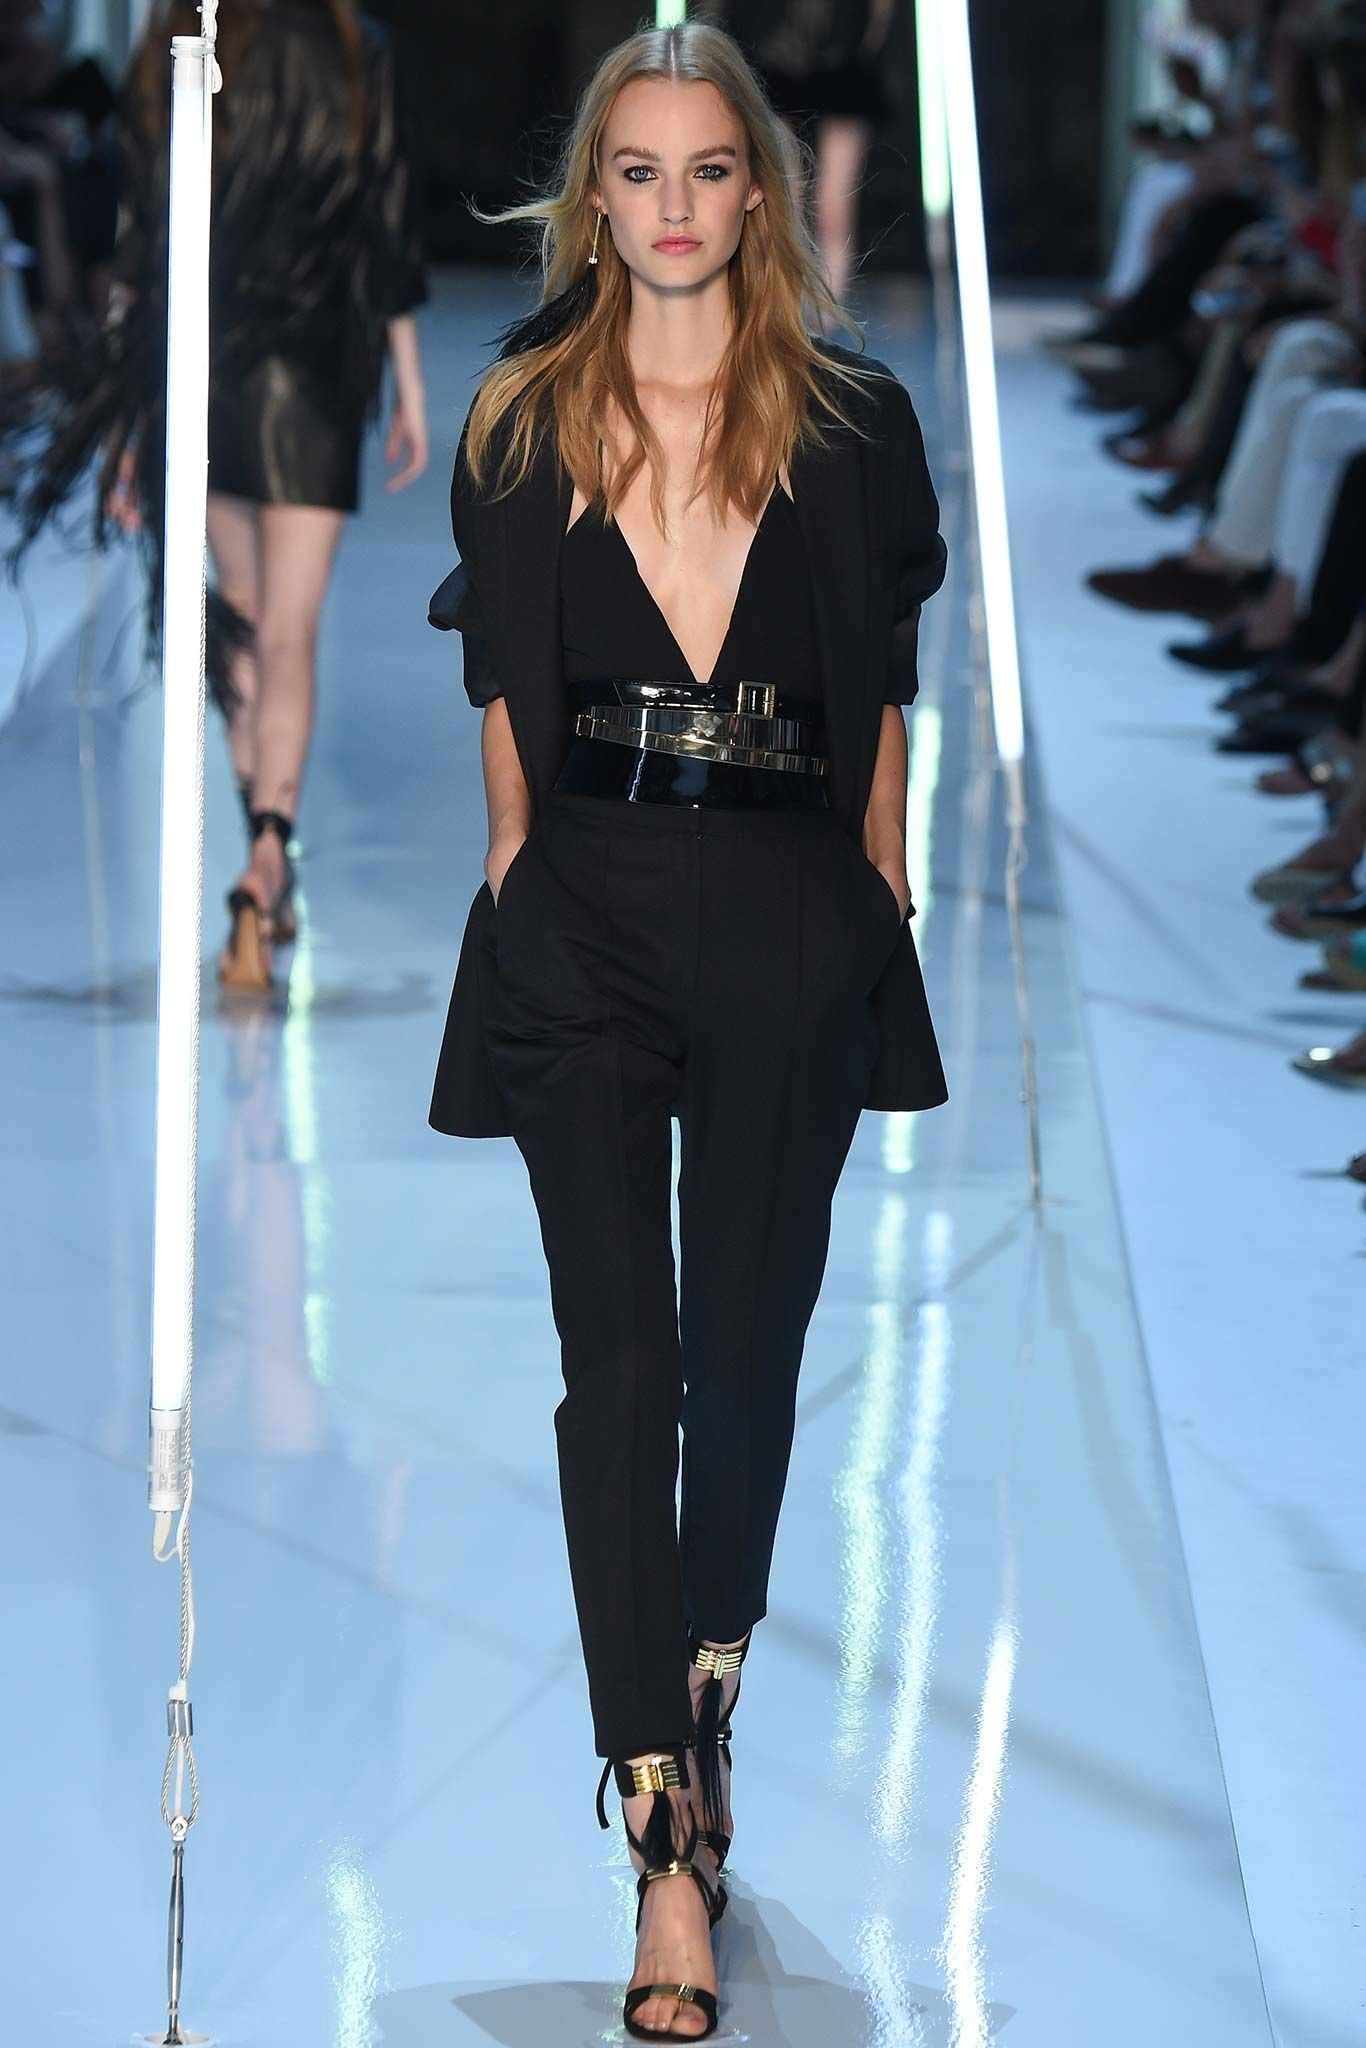 Alexandre Vauthier Fall 2015 Couture Fashion Show - Maartje Verhoef (Women)